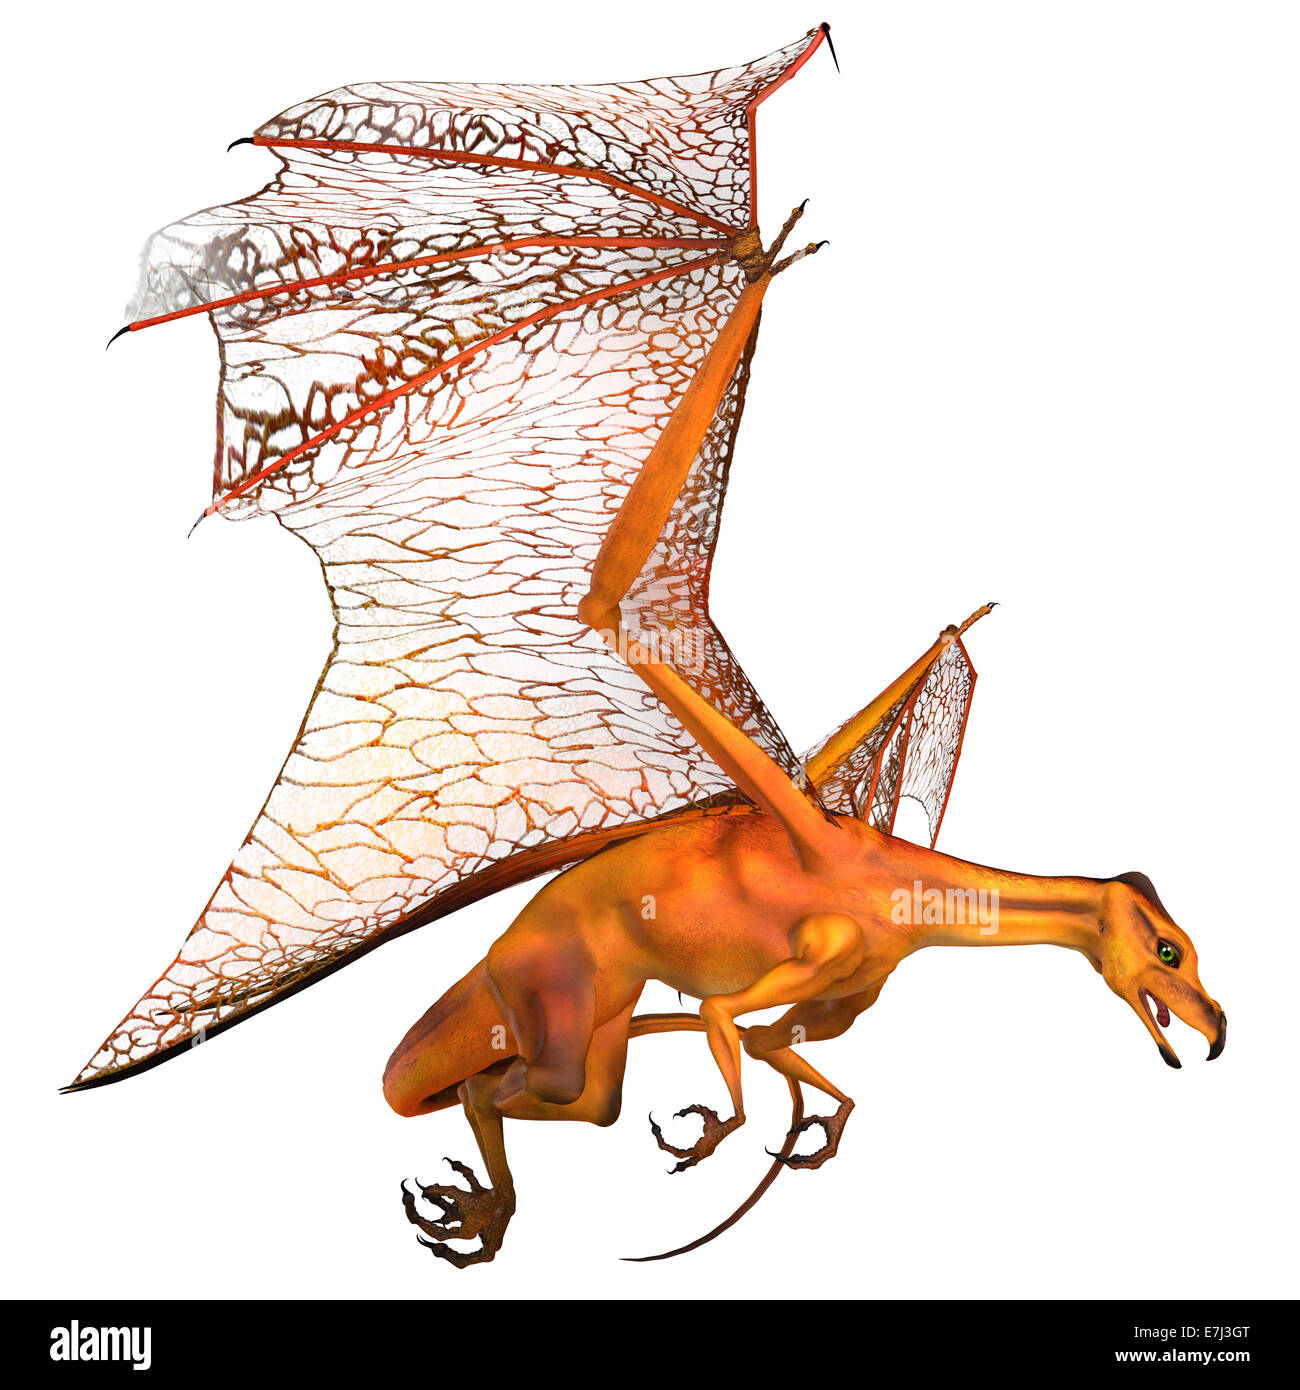 Dragons are mythical creatures known throughout history as having wings and breathing fire. - Stock Image